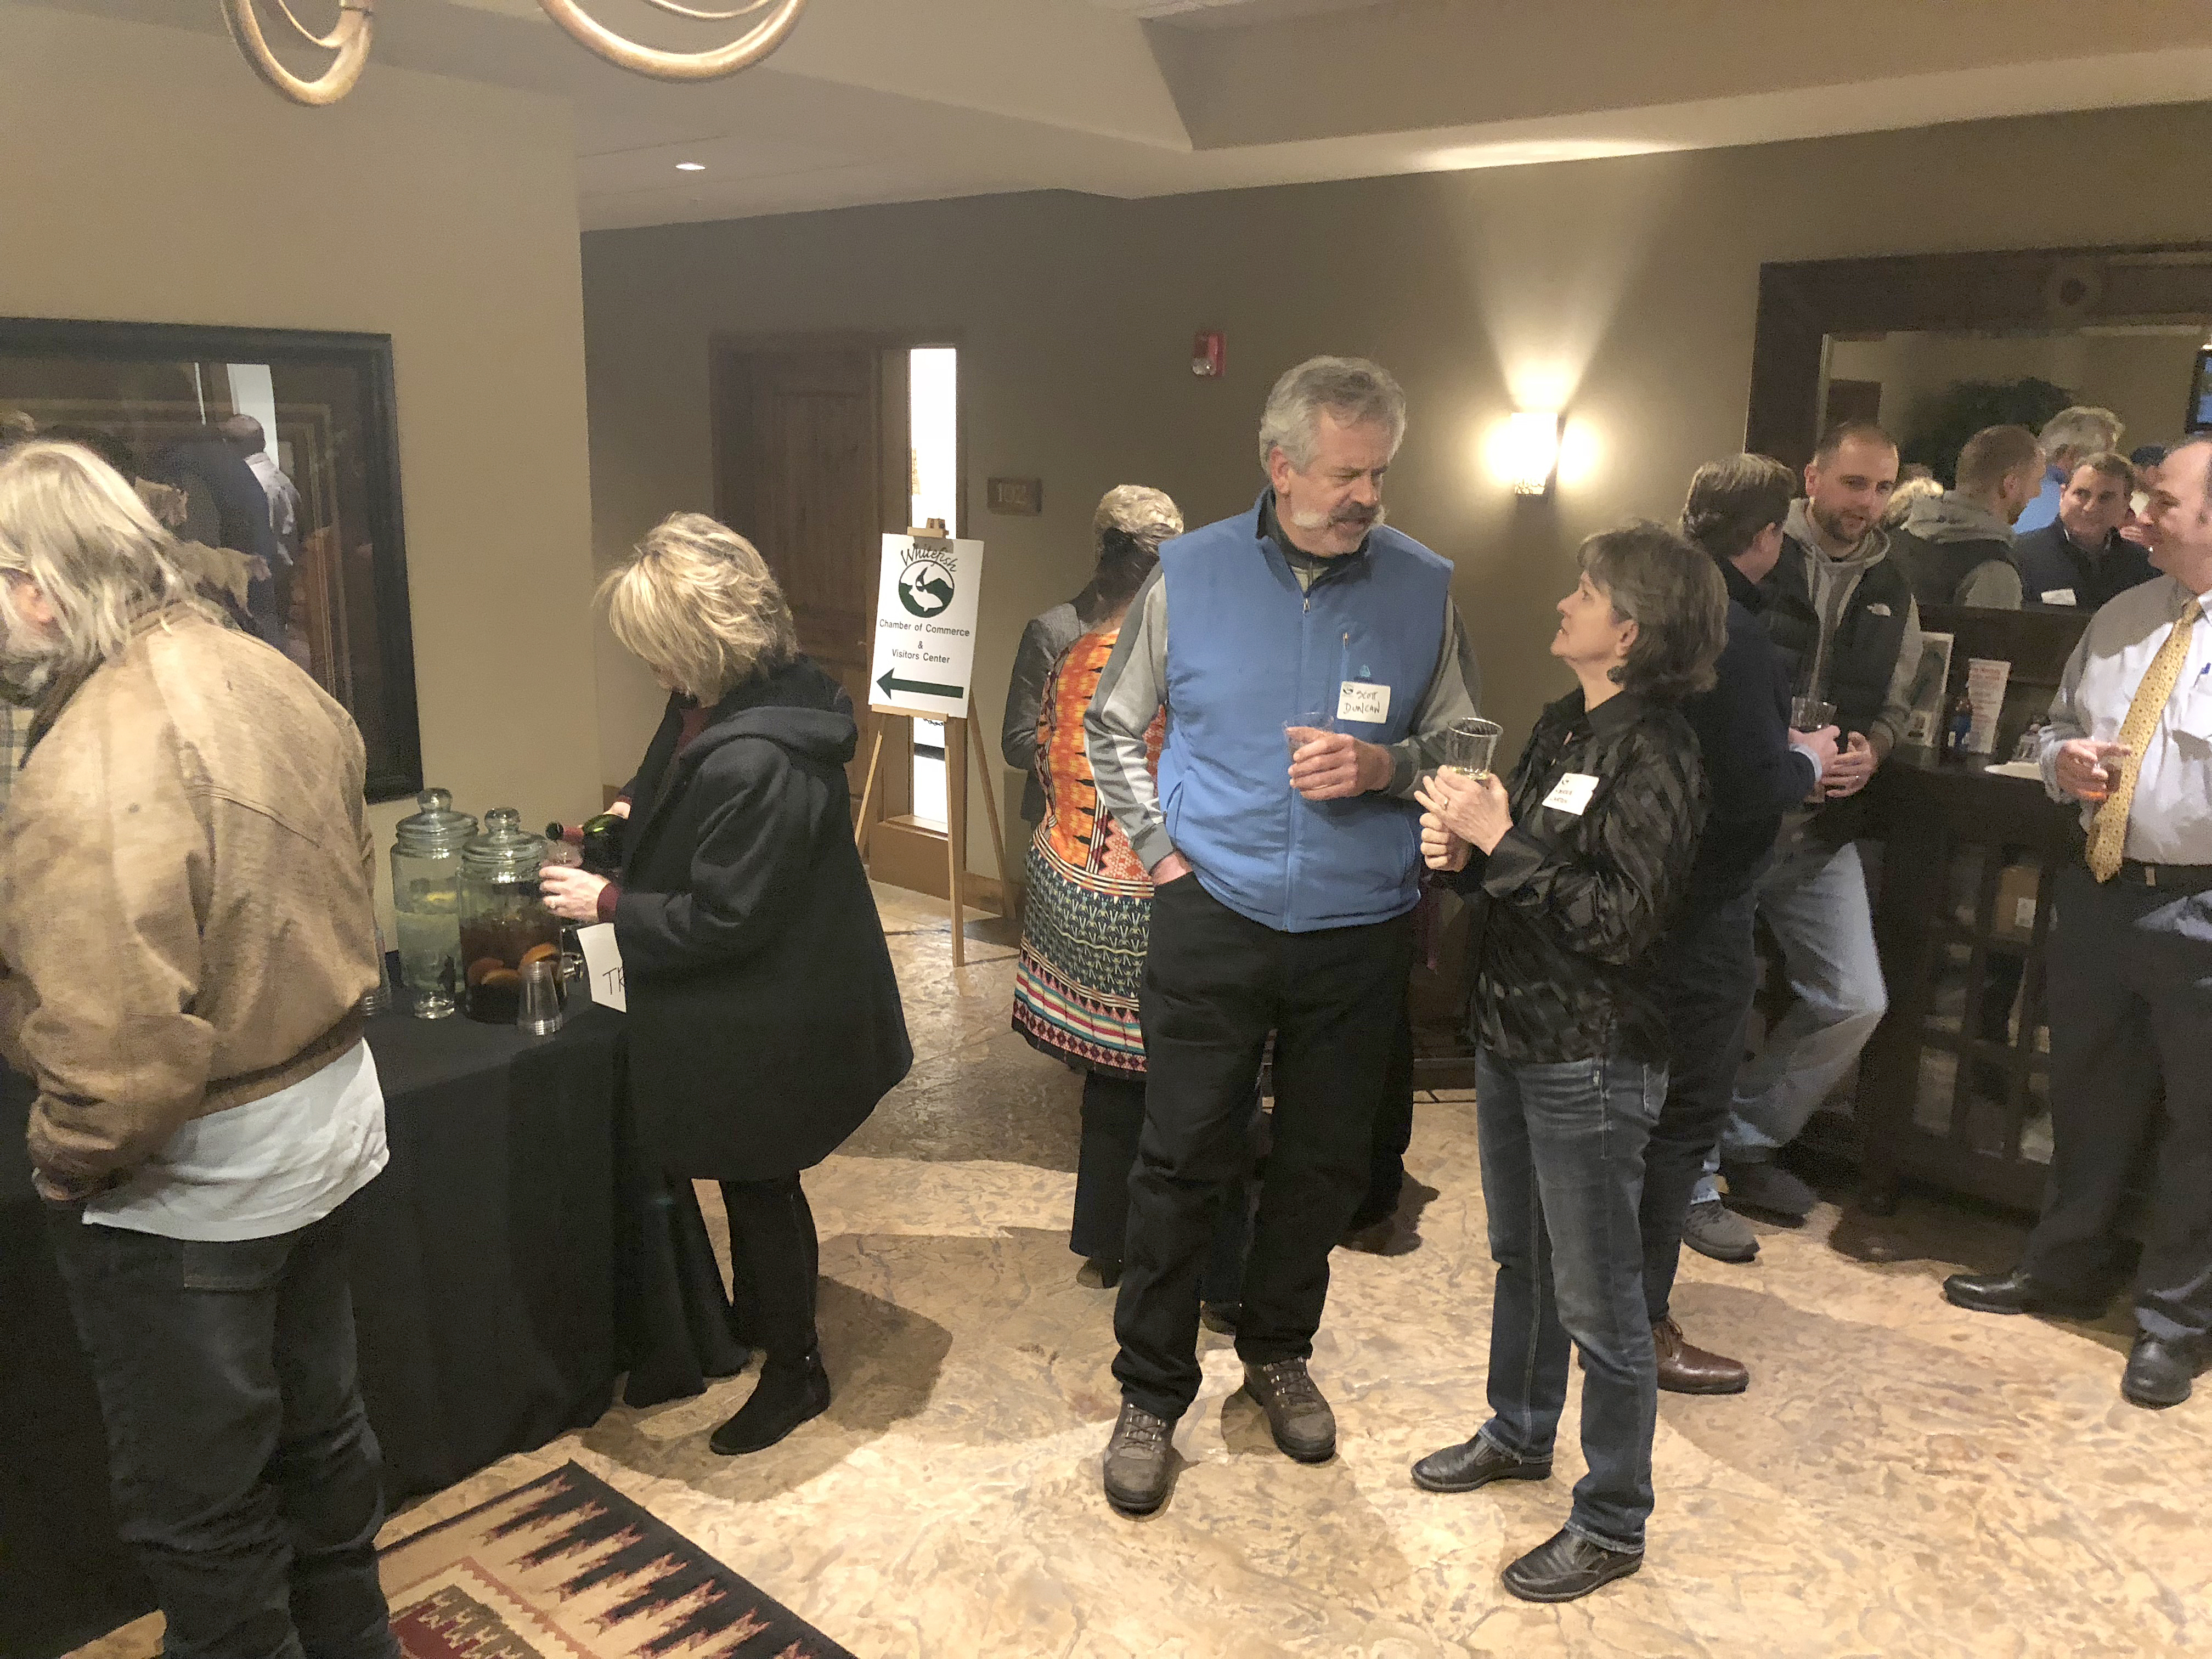 Kerrie Cardon Realtor At RE MAX Rocky Mountain Real Estate Visits With Guests